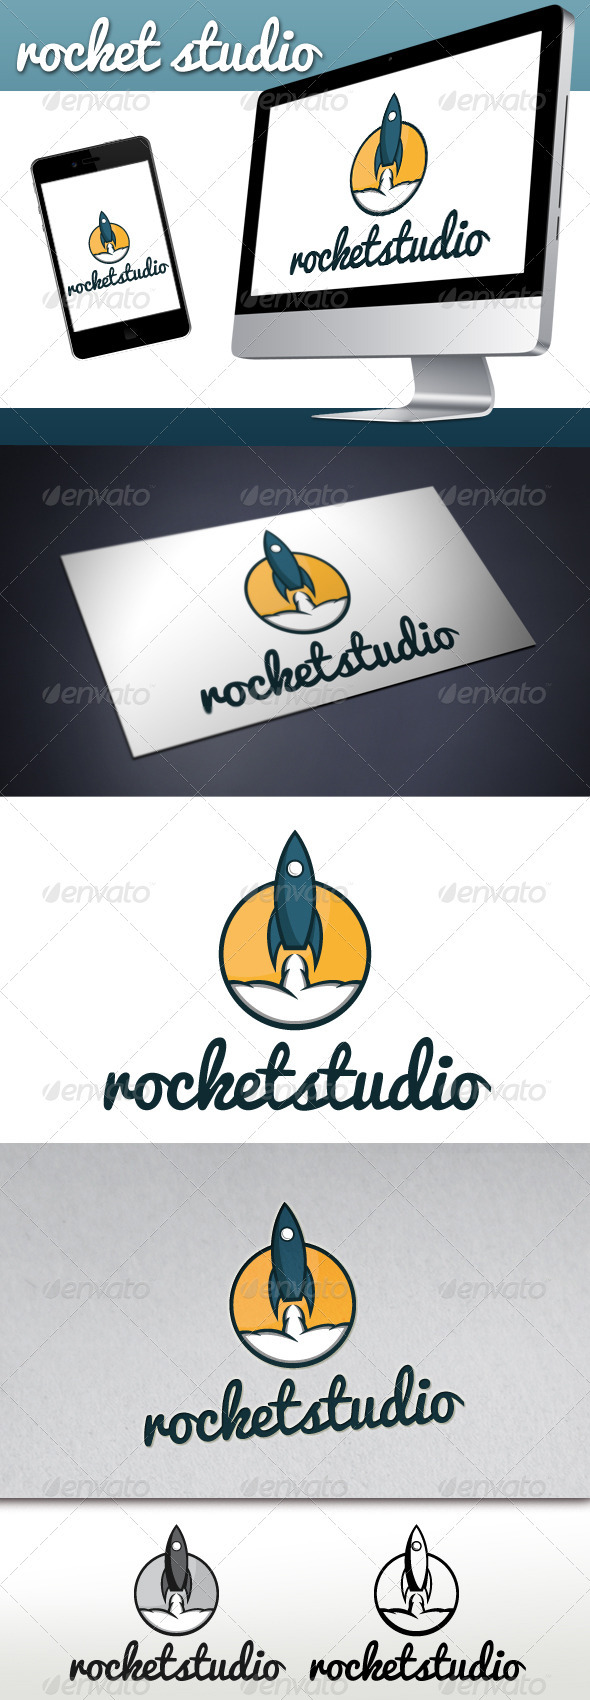 Rocket Studio Logo